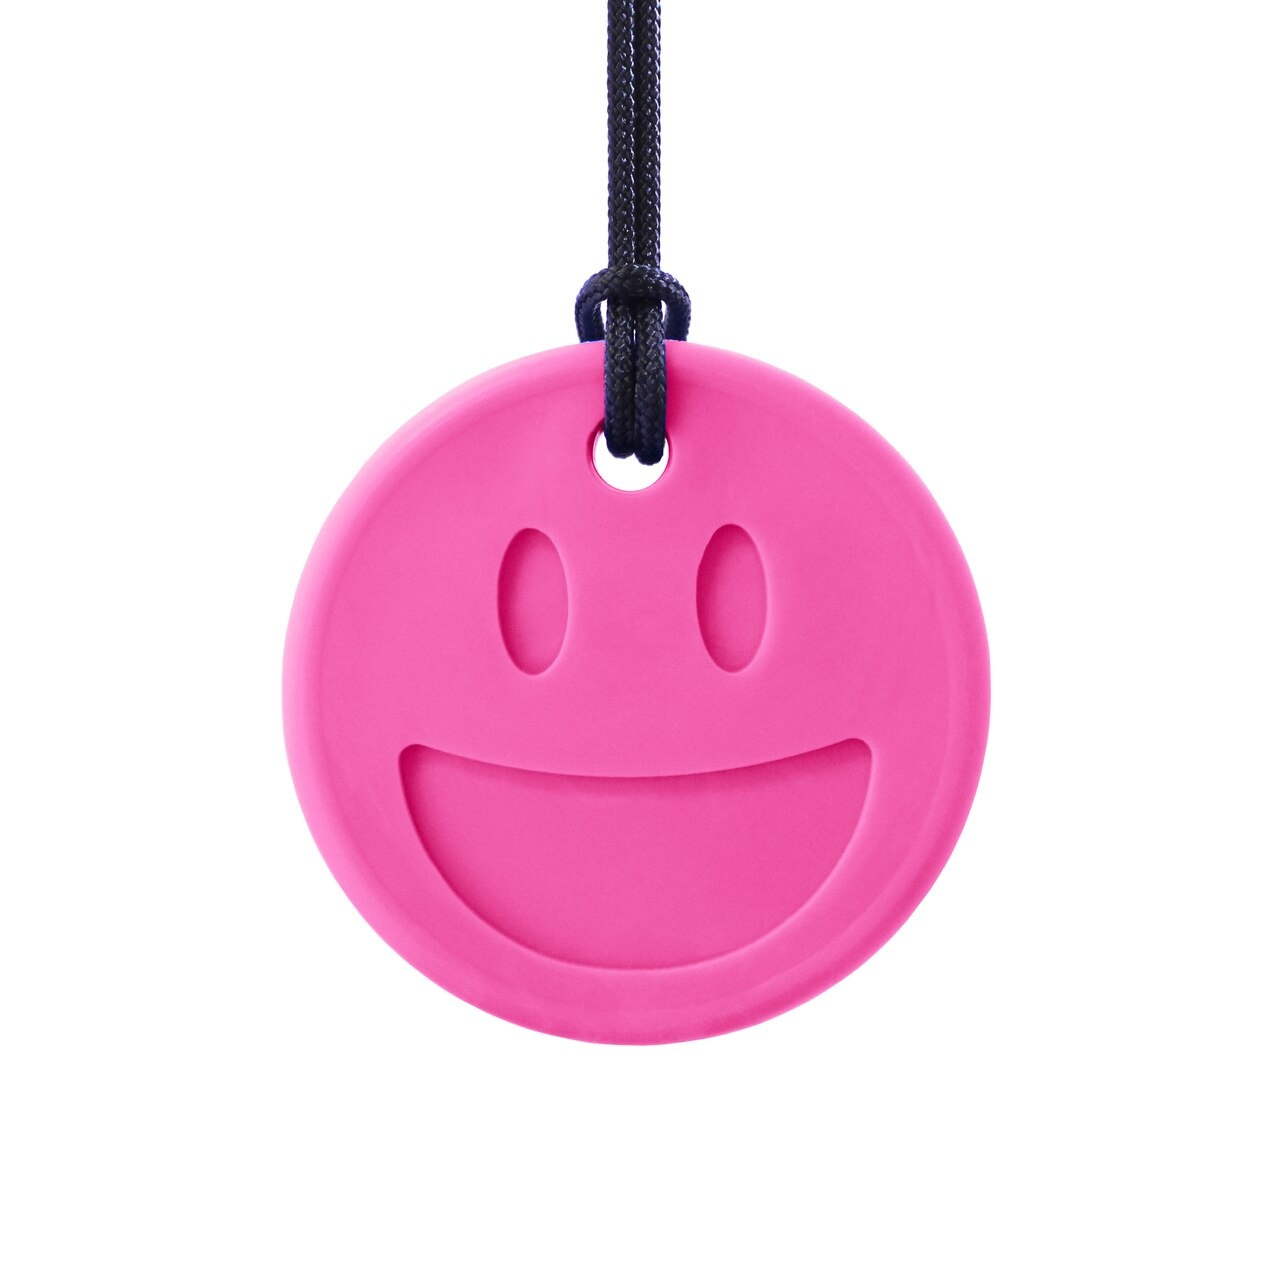 ARK-therapeutic ARK's Smiley Face Chew Necklace